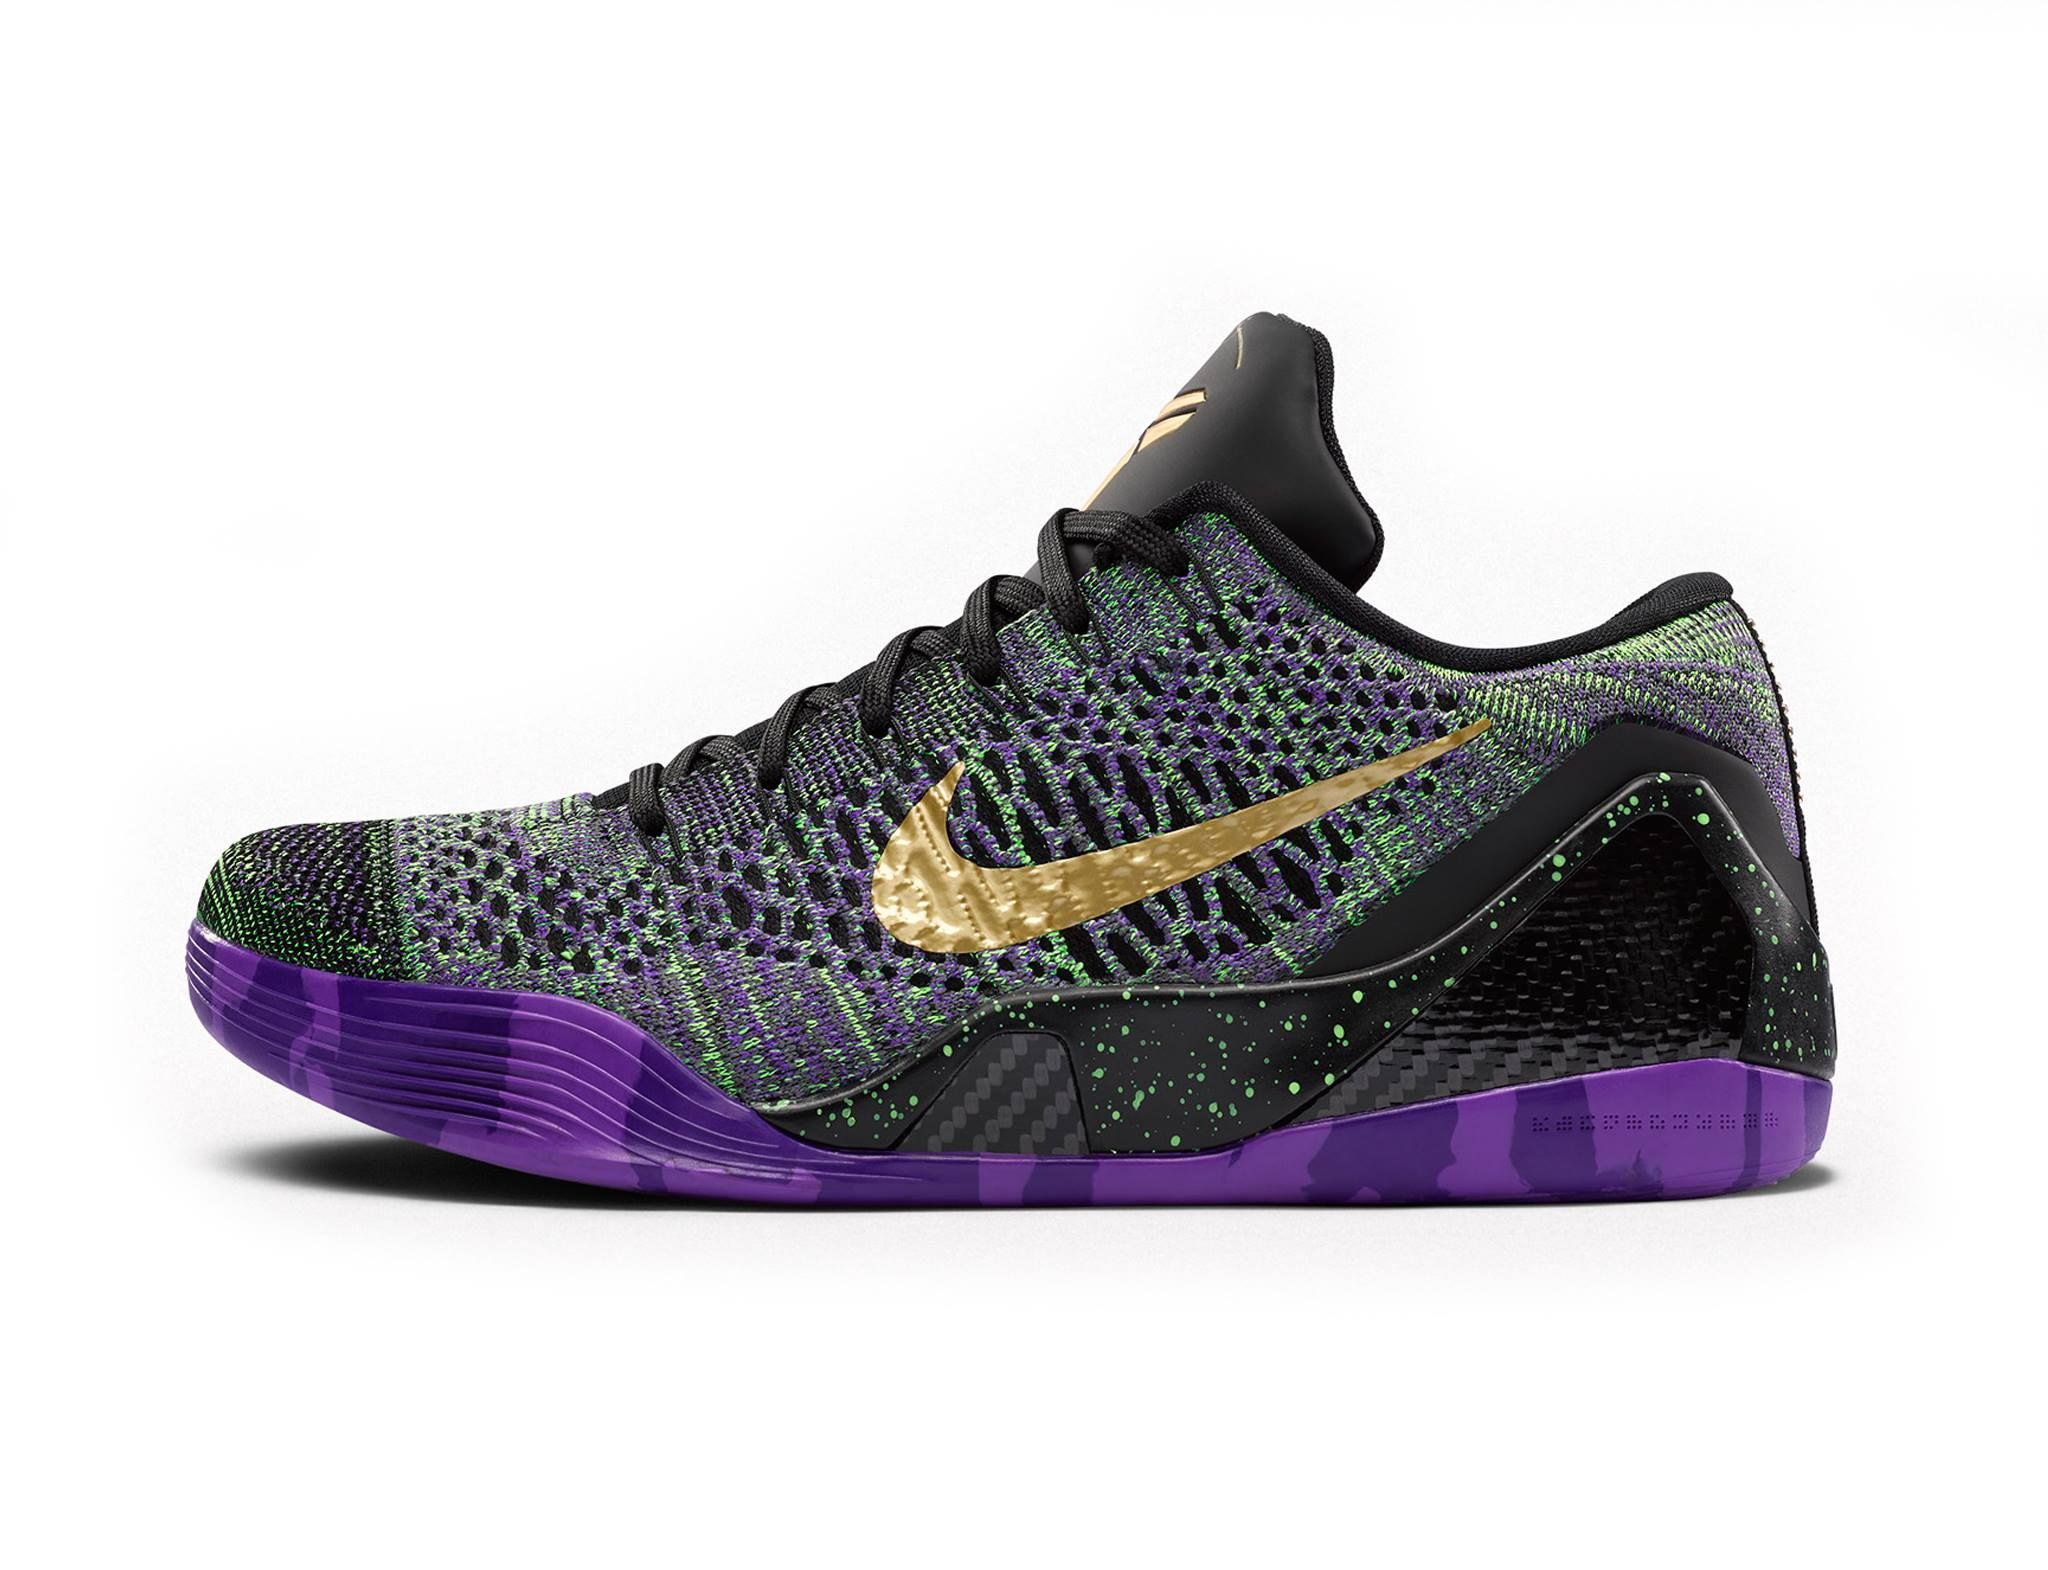 release date 3aec0 6ee7b Limited edition Kobe 9 Elite #MambaMoment to celebrate Kobe passing MJ on  the #NBA scoring list.